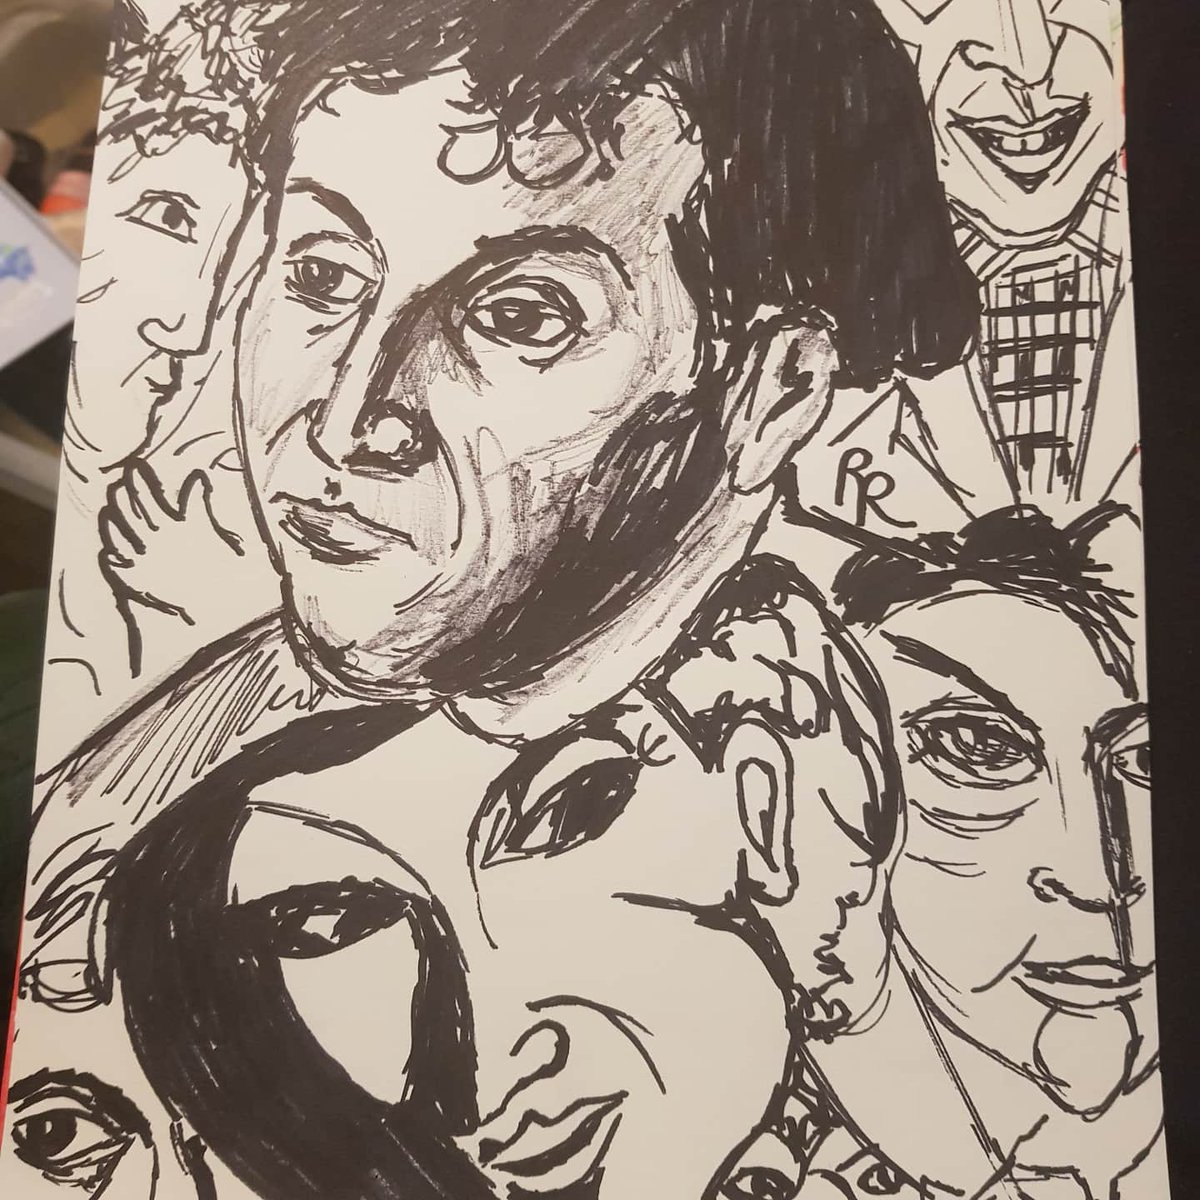 Weird artist portraits renoir, chagall and picasso pic.twitter.com/OjyNKVrP5t